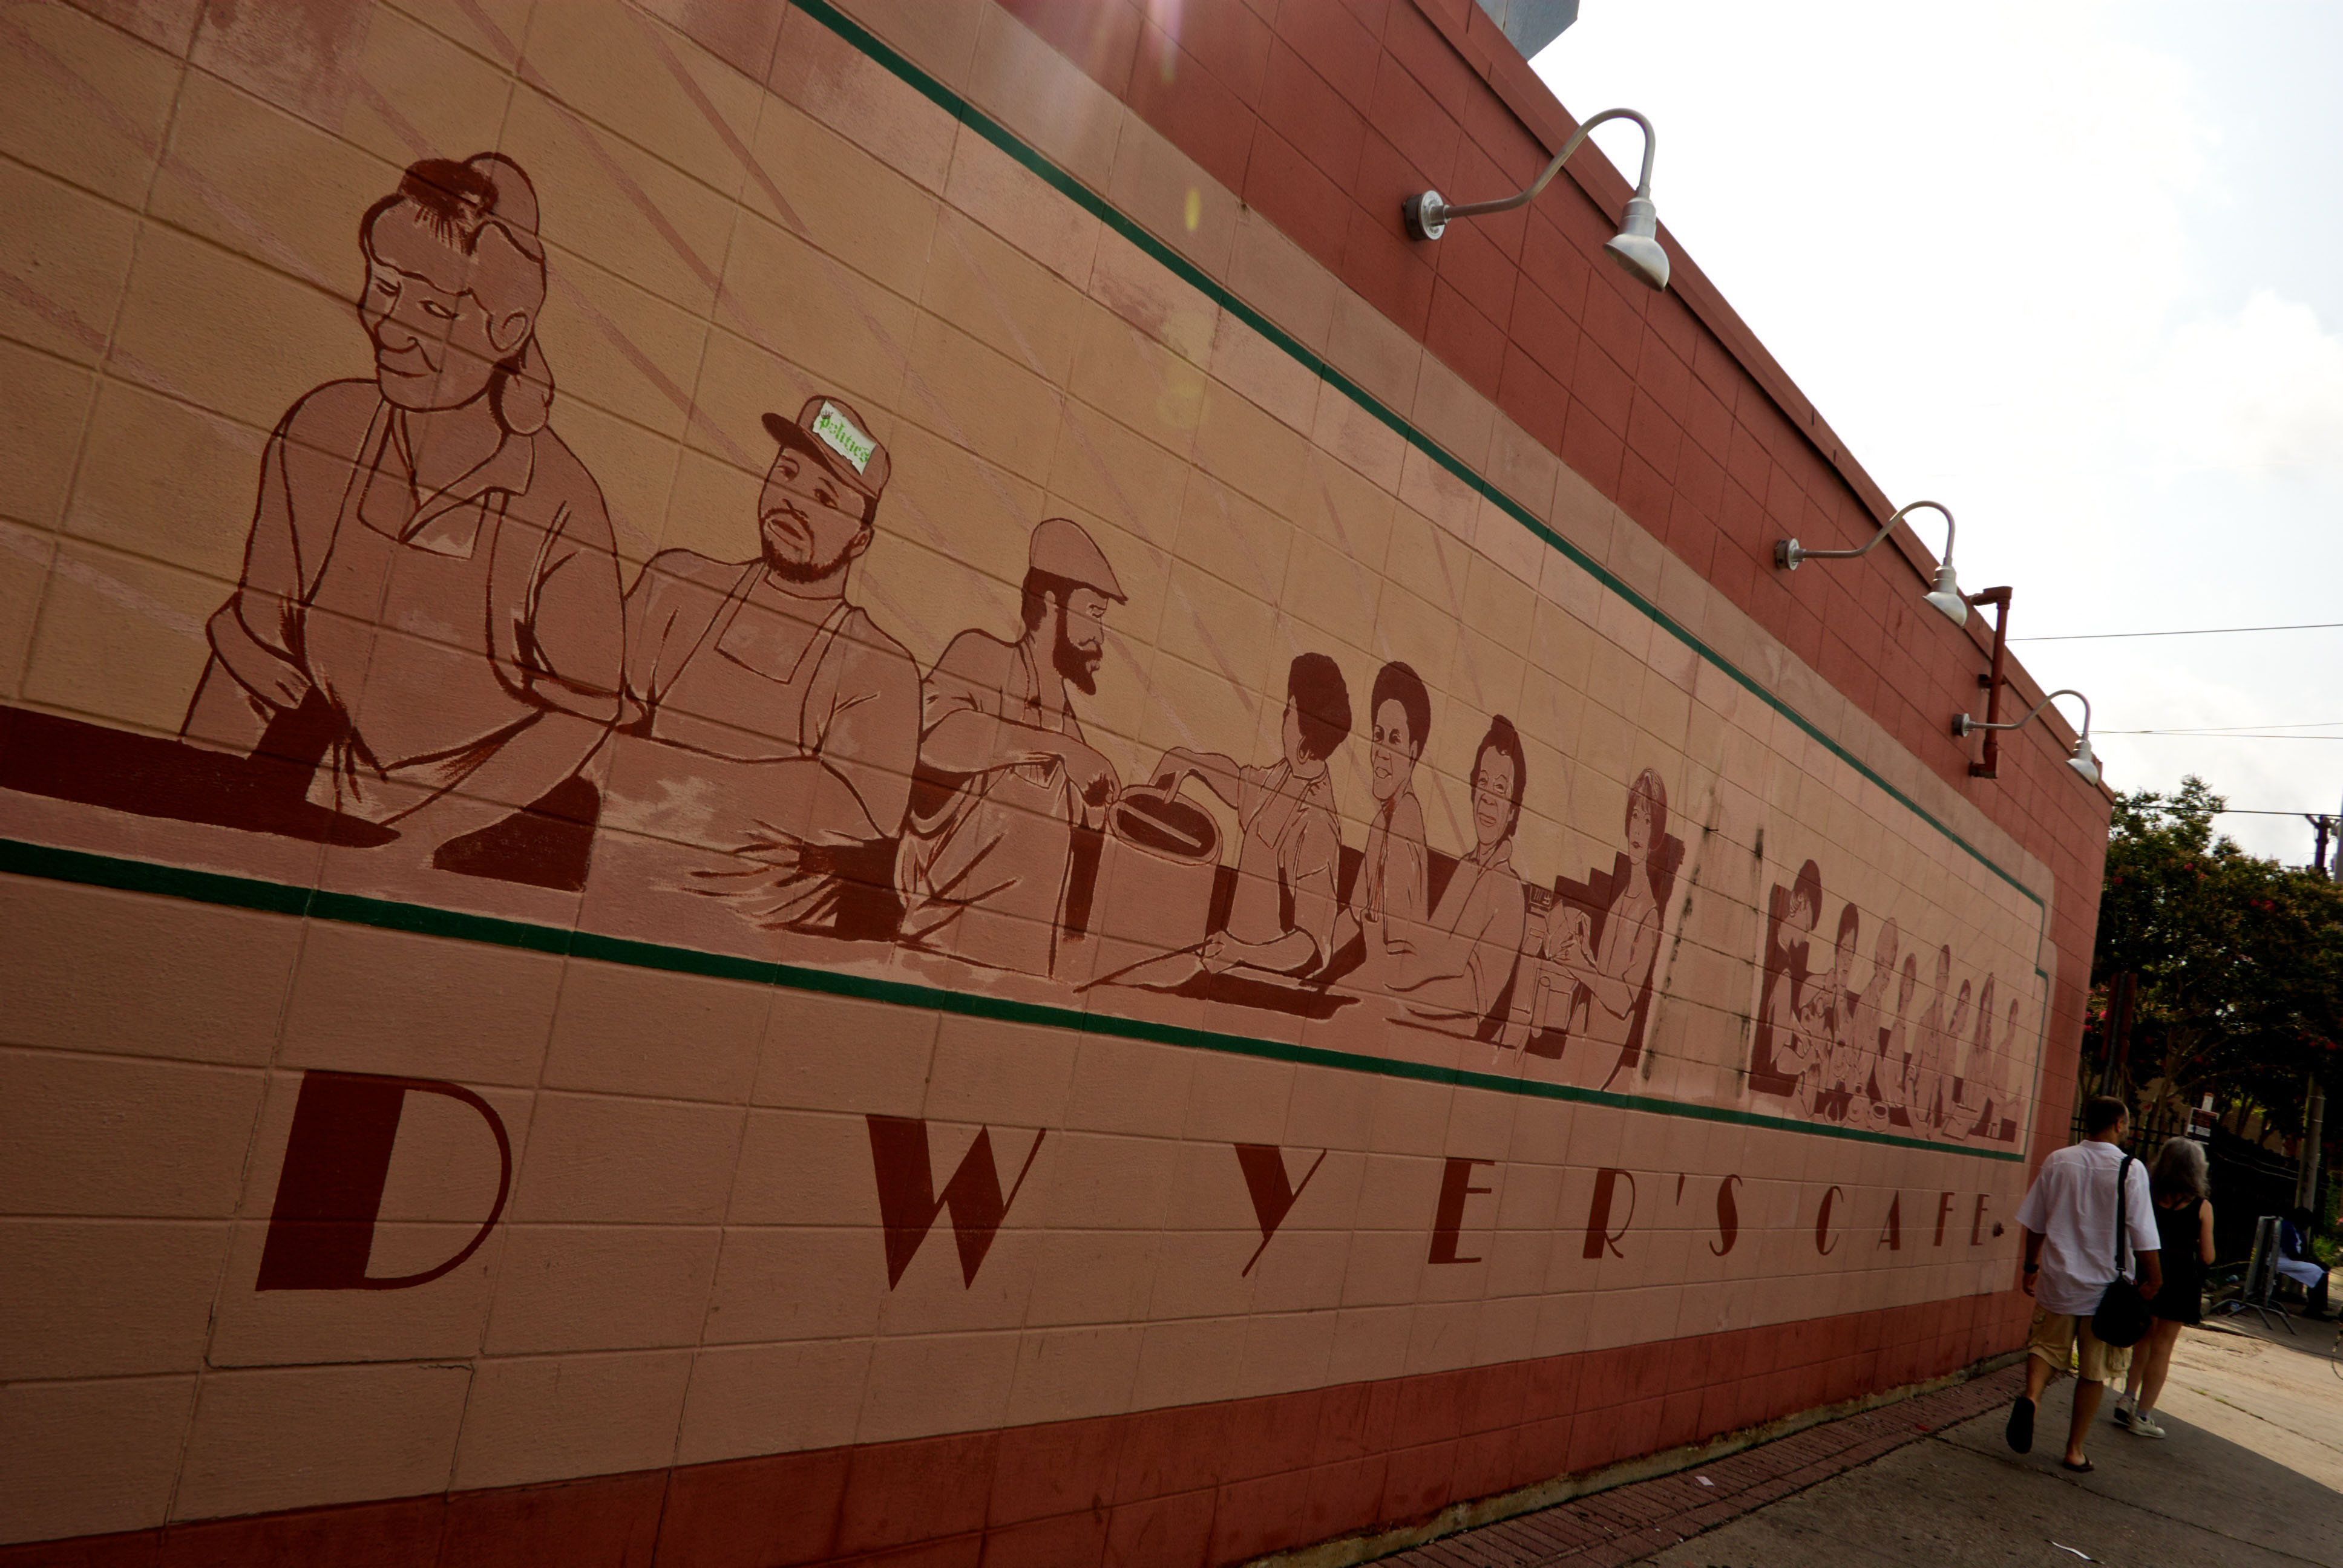 Tourists walking by big wall mural at Dwyer's Cafe in downtown Lafayette LA